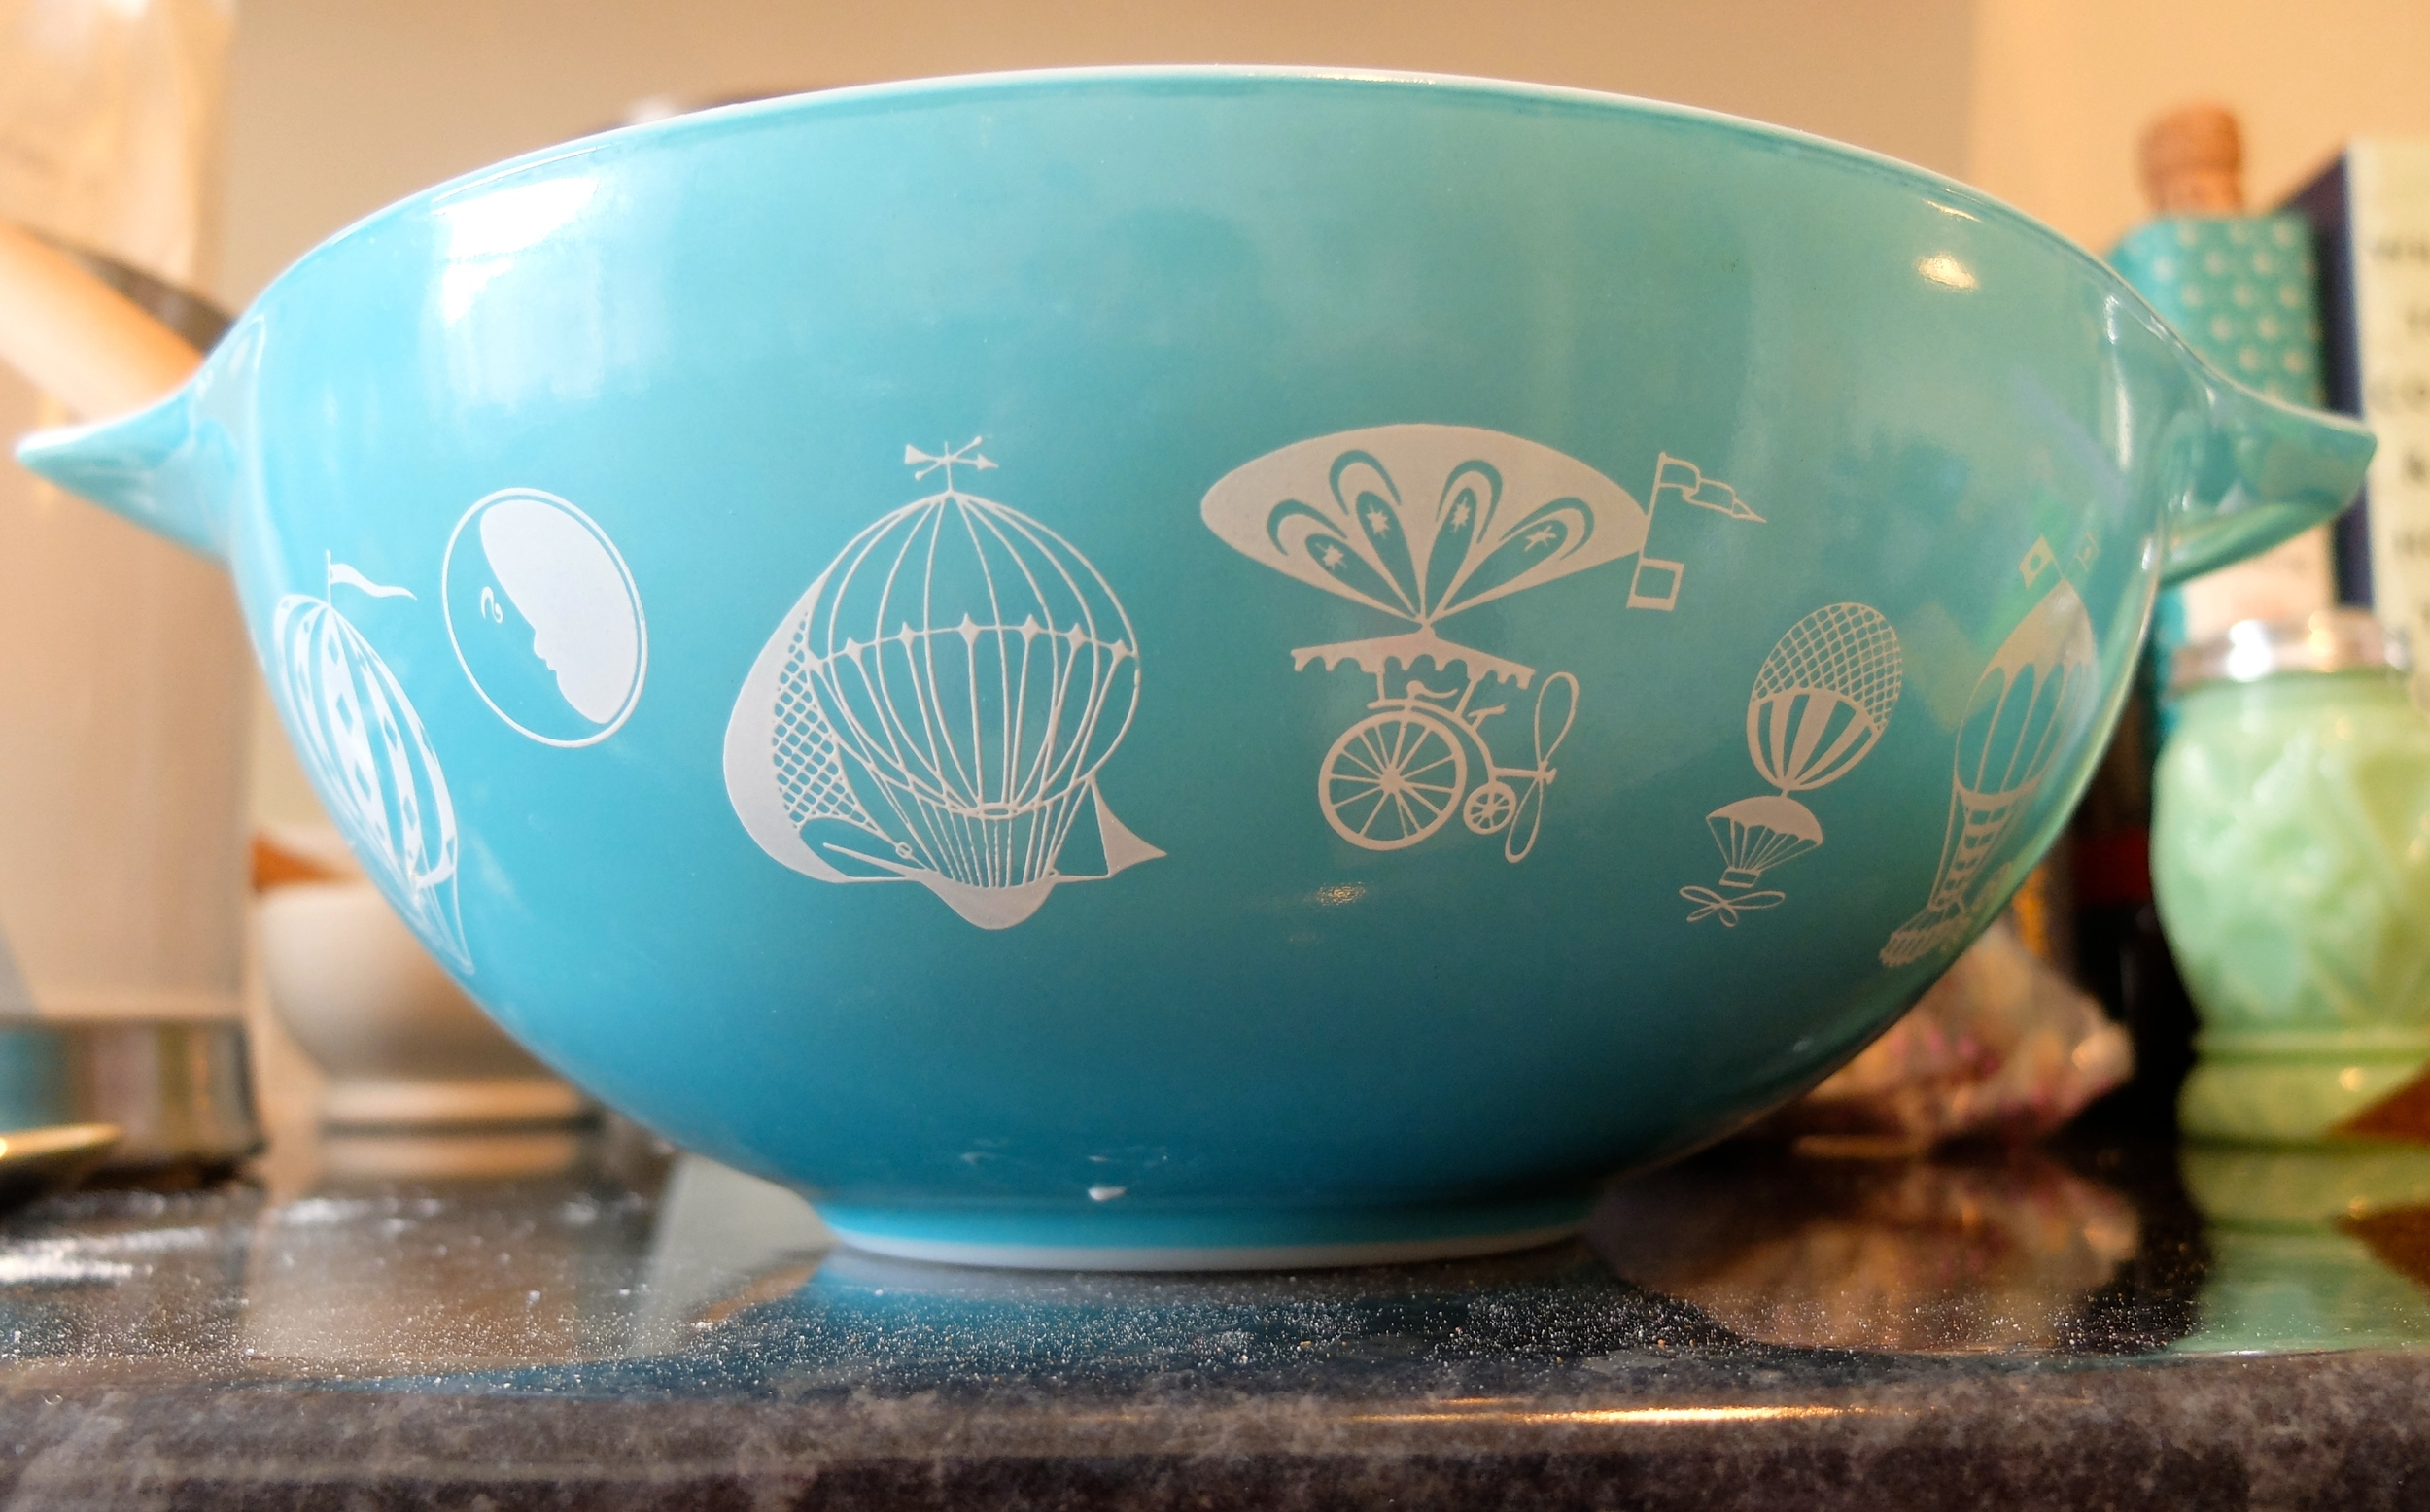 This is the only piece of Eleanor's Pyrex Collection that still exists, and I wish I had more of it. At least if only one piece survived, it was the biggest mixing bowl ever.